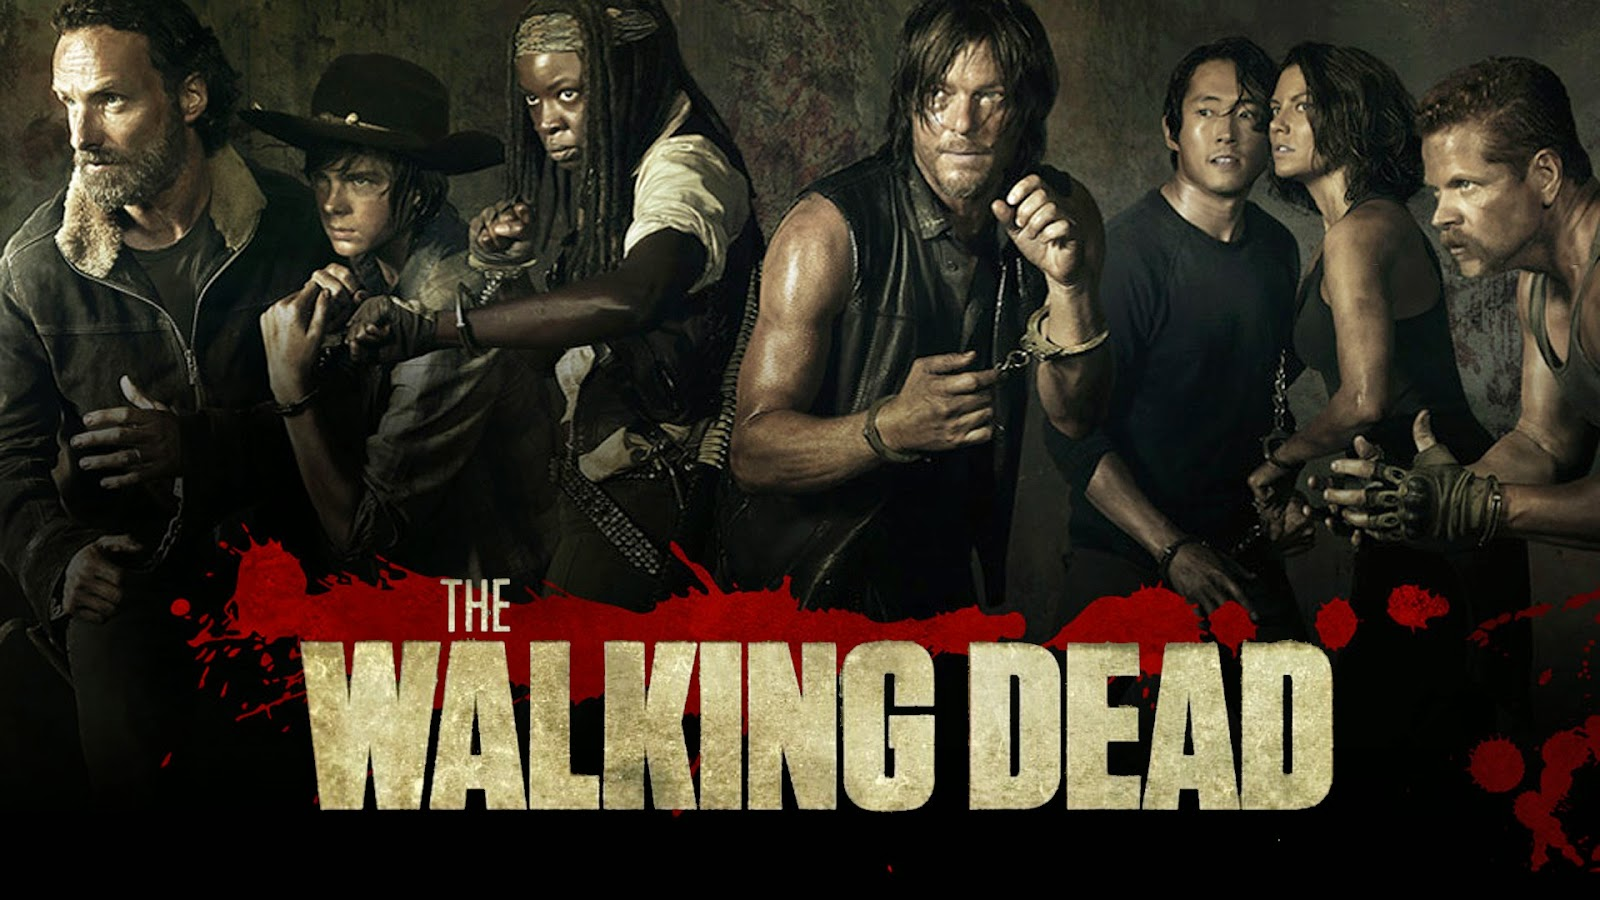 the walking dead season online free